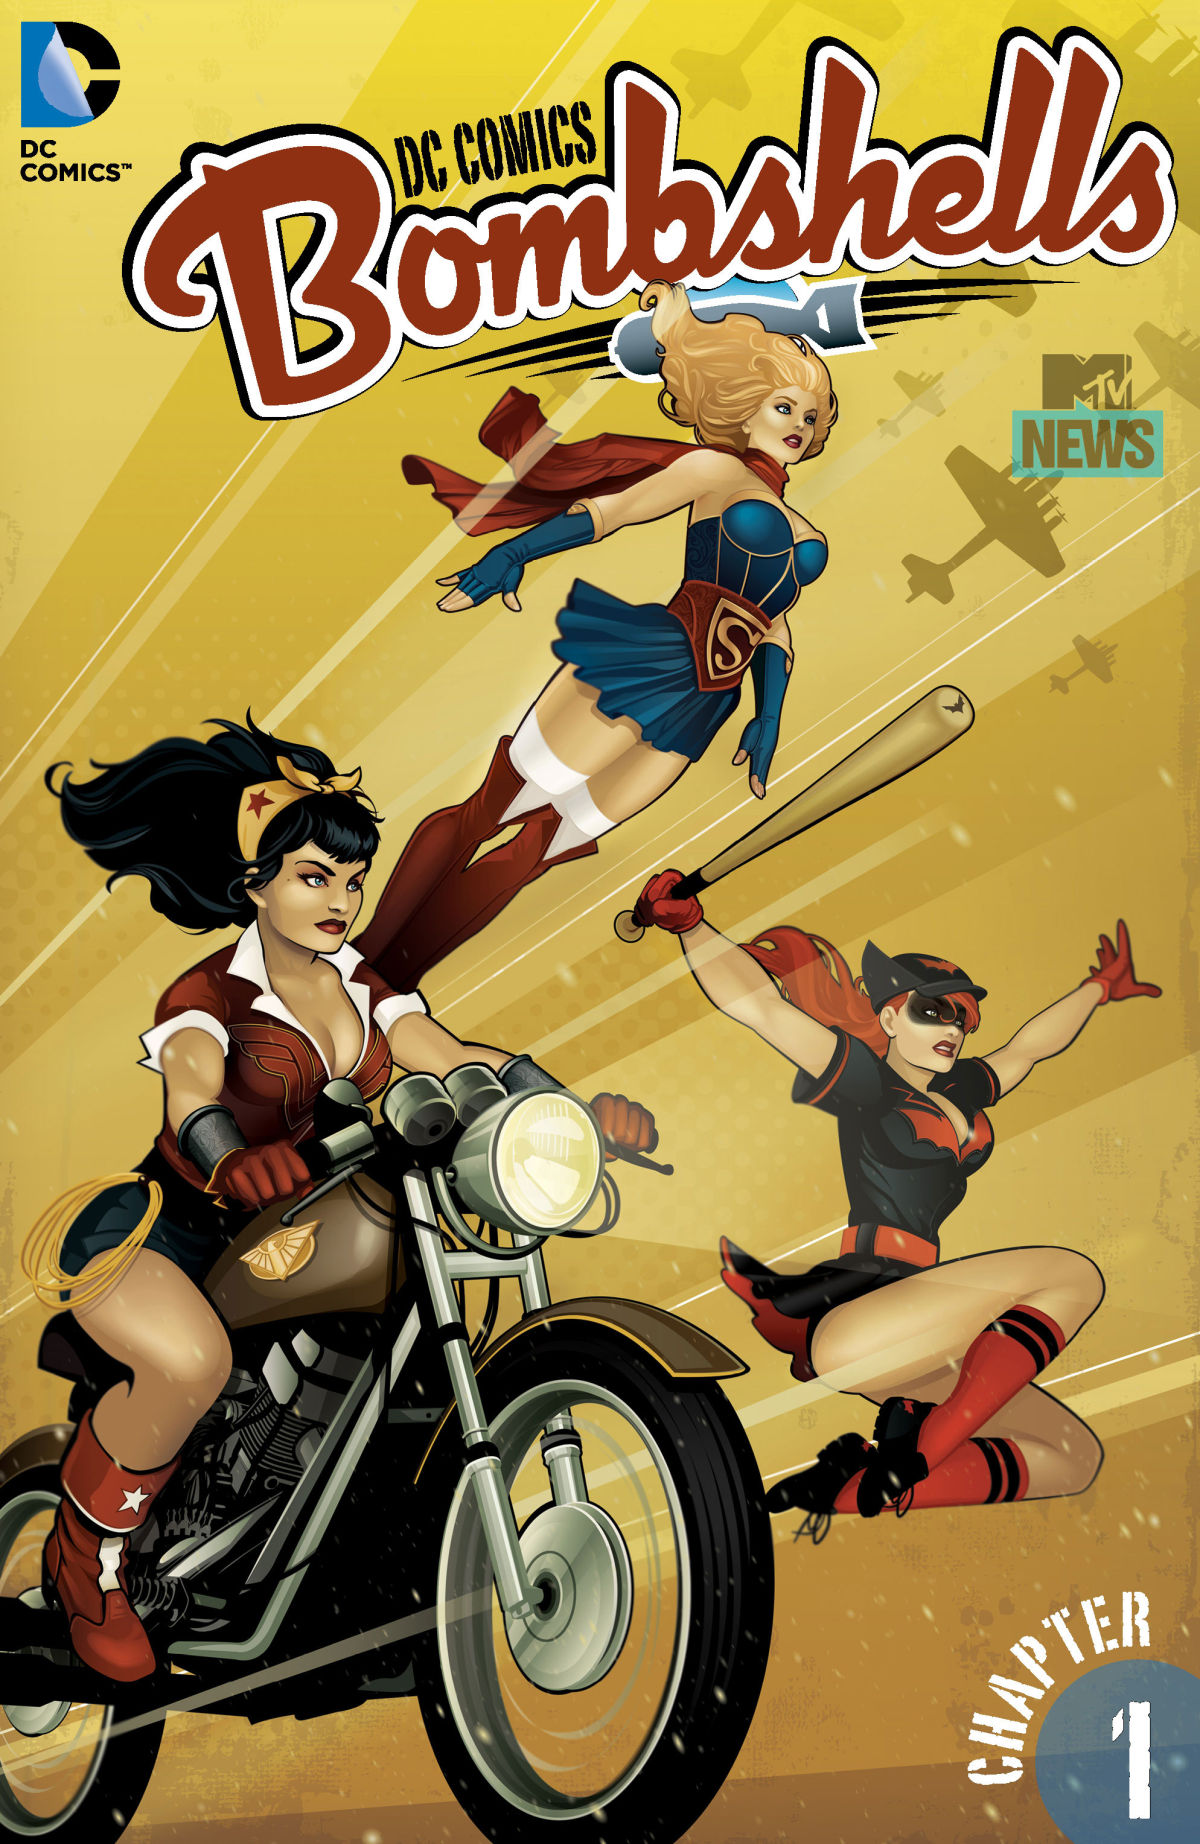 Preview DC Comics Bombshells #1